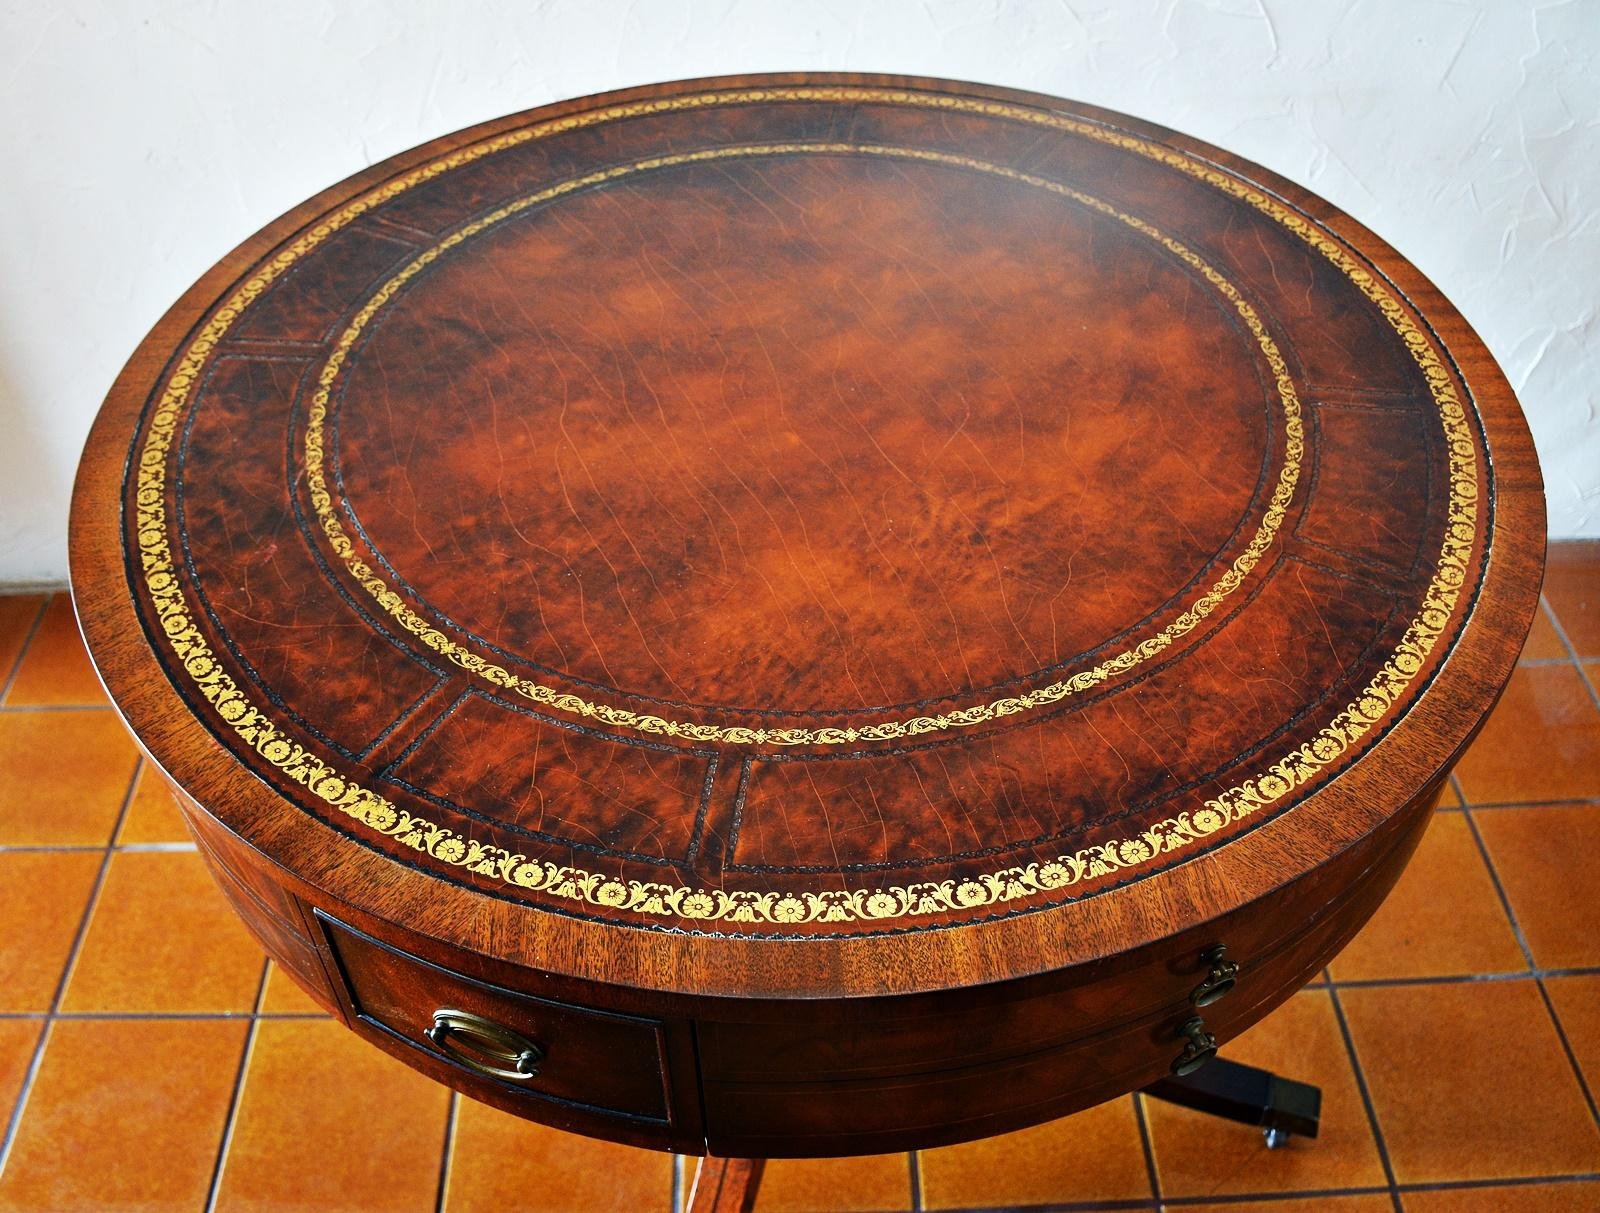 Heirloom quality weiman regency style mahogany drum table 5037 roll over large image to magnify click large image to zoom geotapseo Images